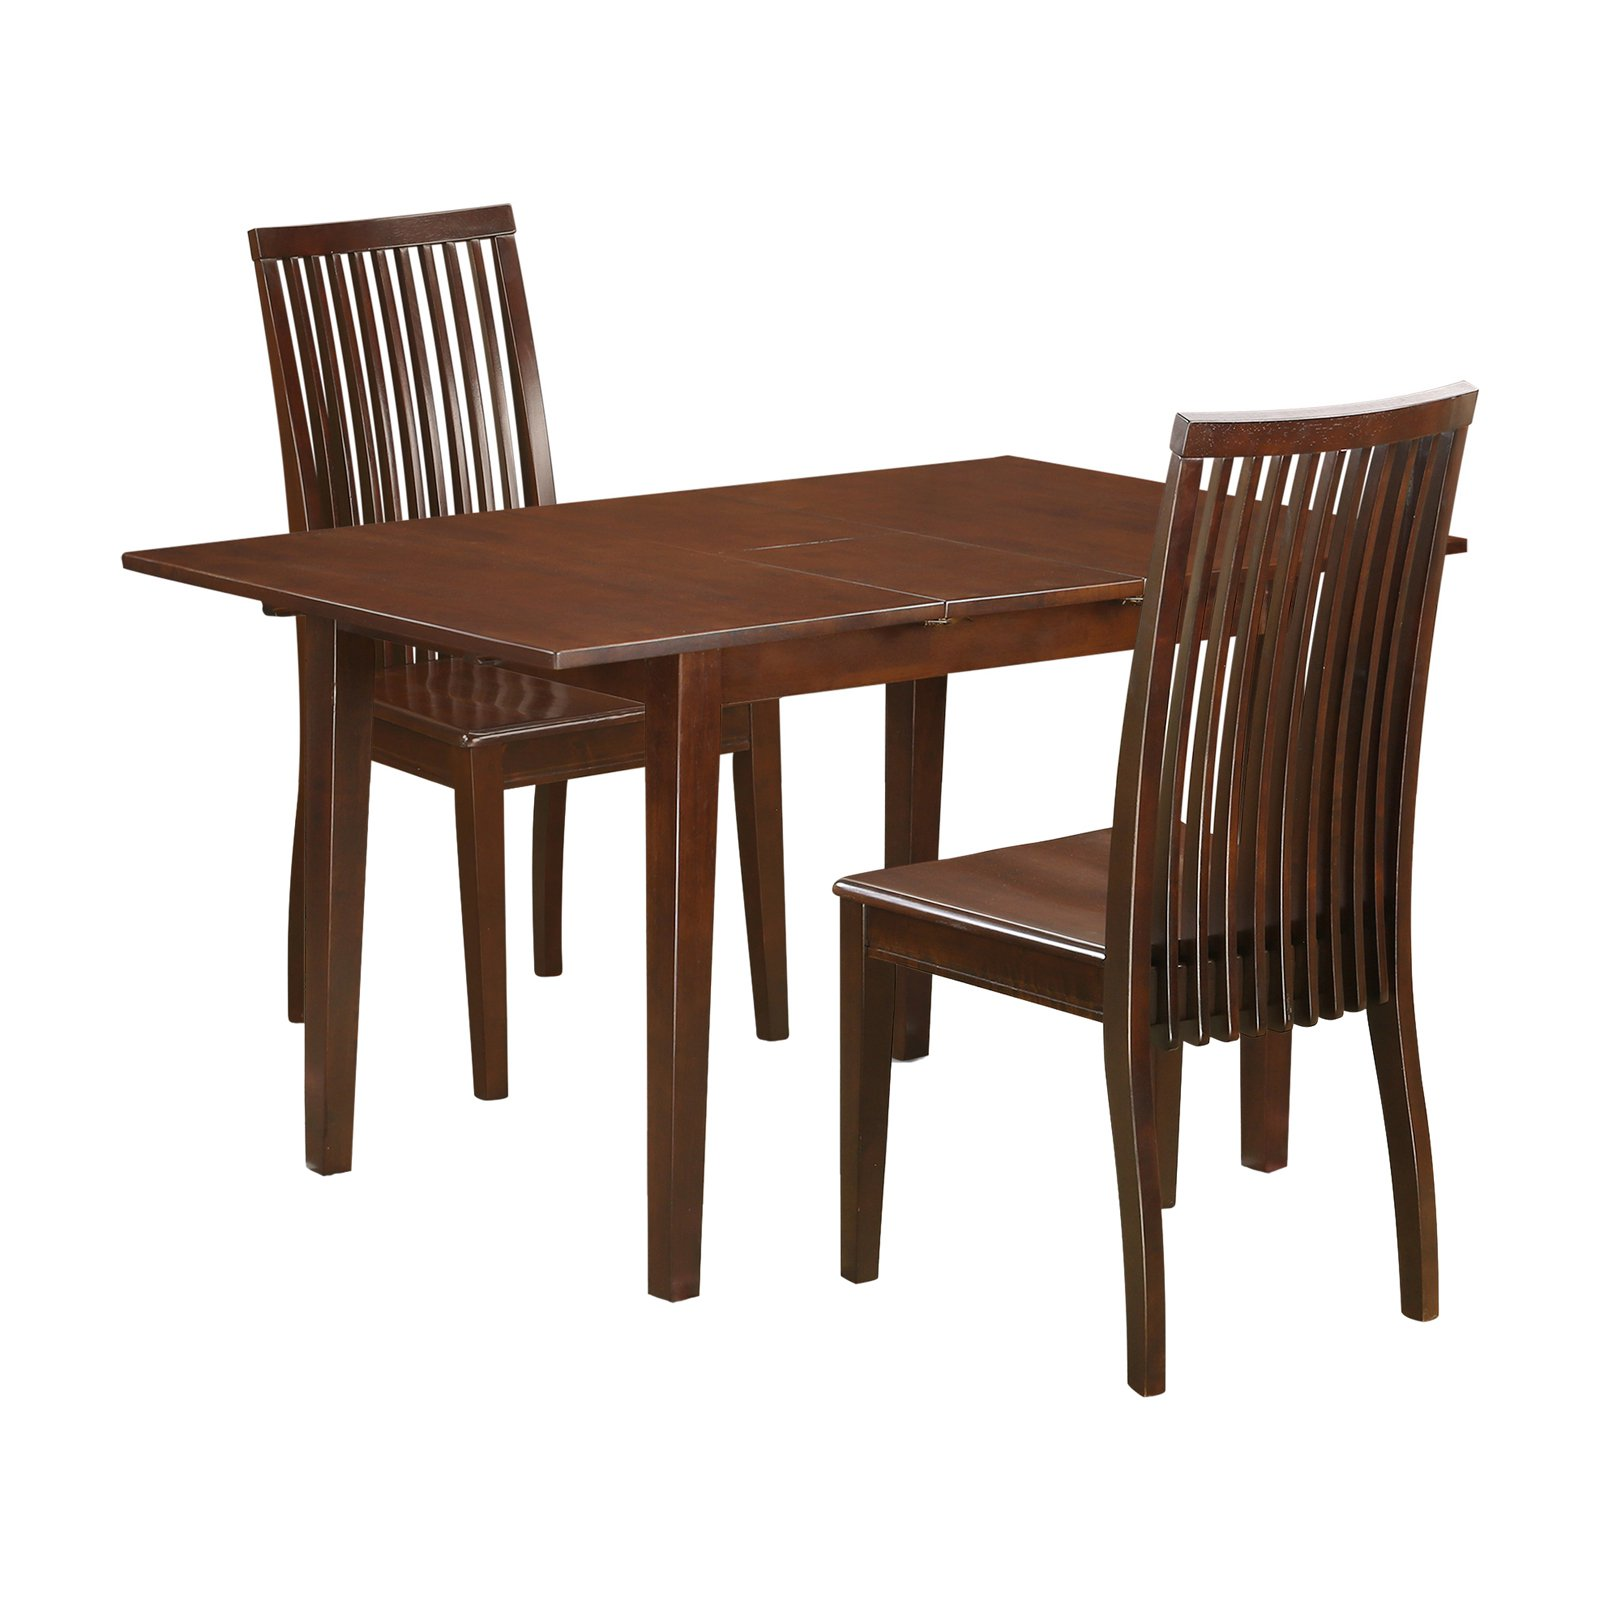 East West Furniture 3 Piece Norfolk Dining Table Set with Wood Seat